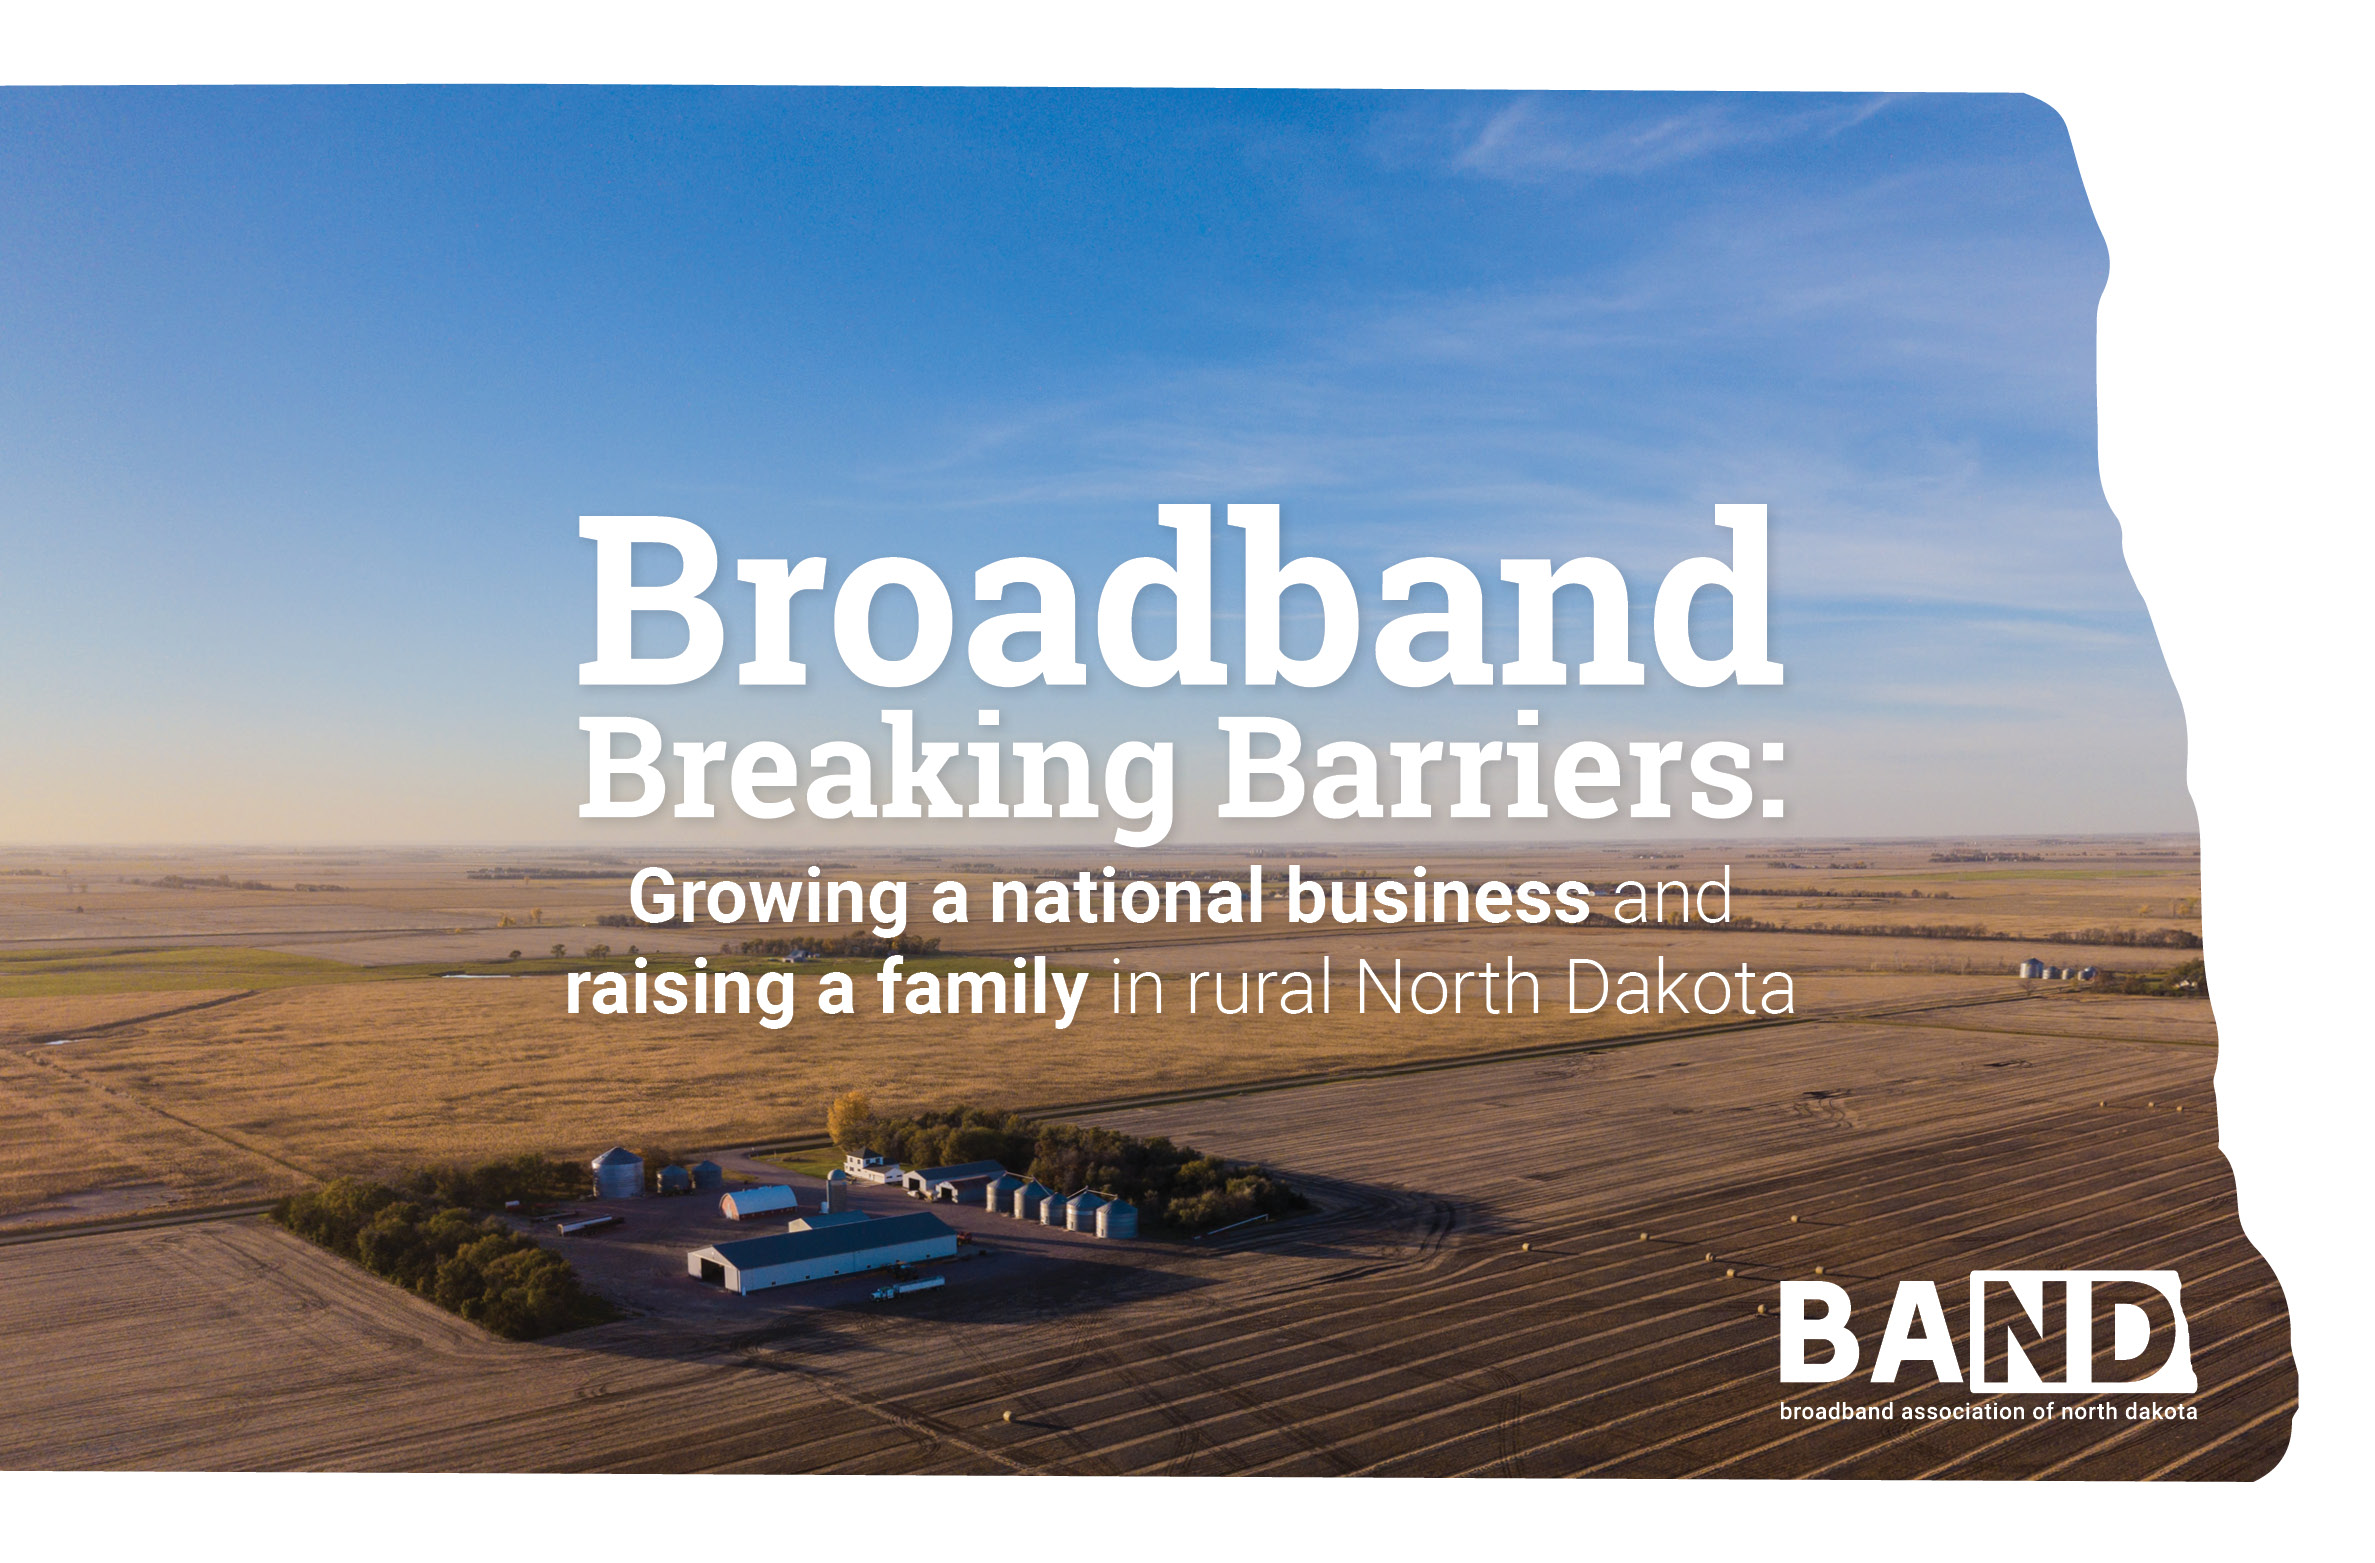 2019-07 BAND Broadband Breaking Barriers Wireframe Graphics